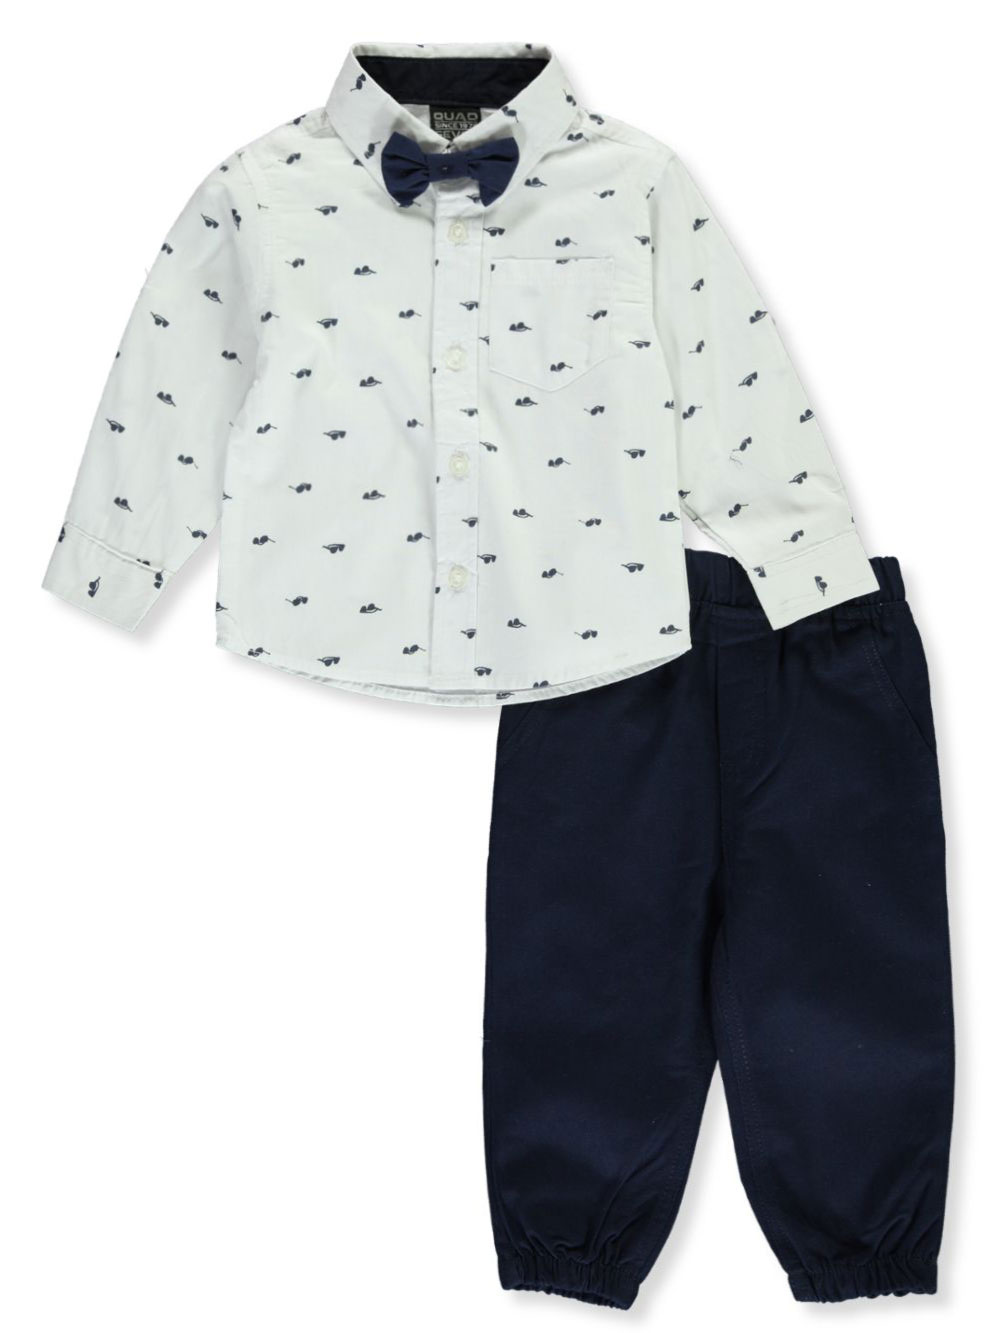 Boys Navy/Multi Pant Sets